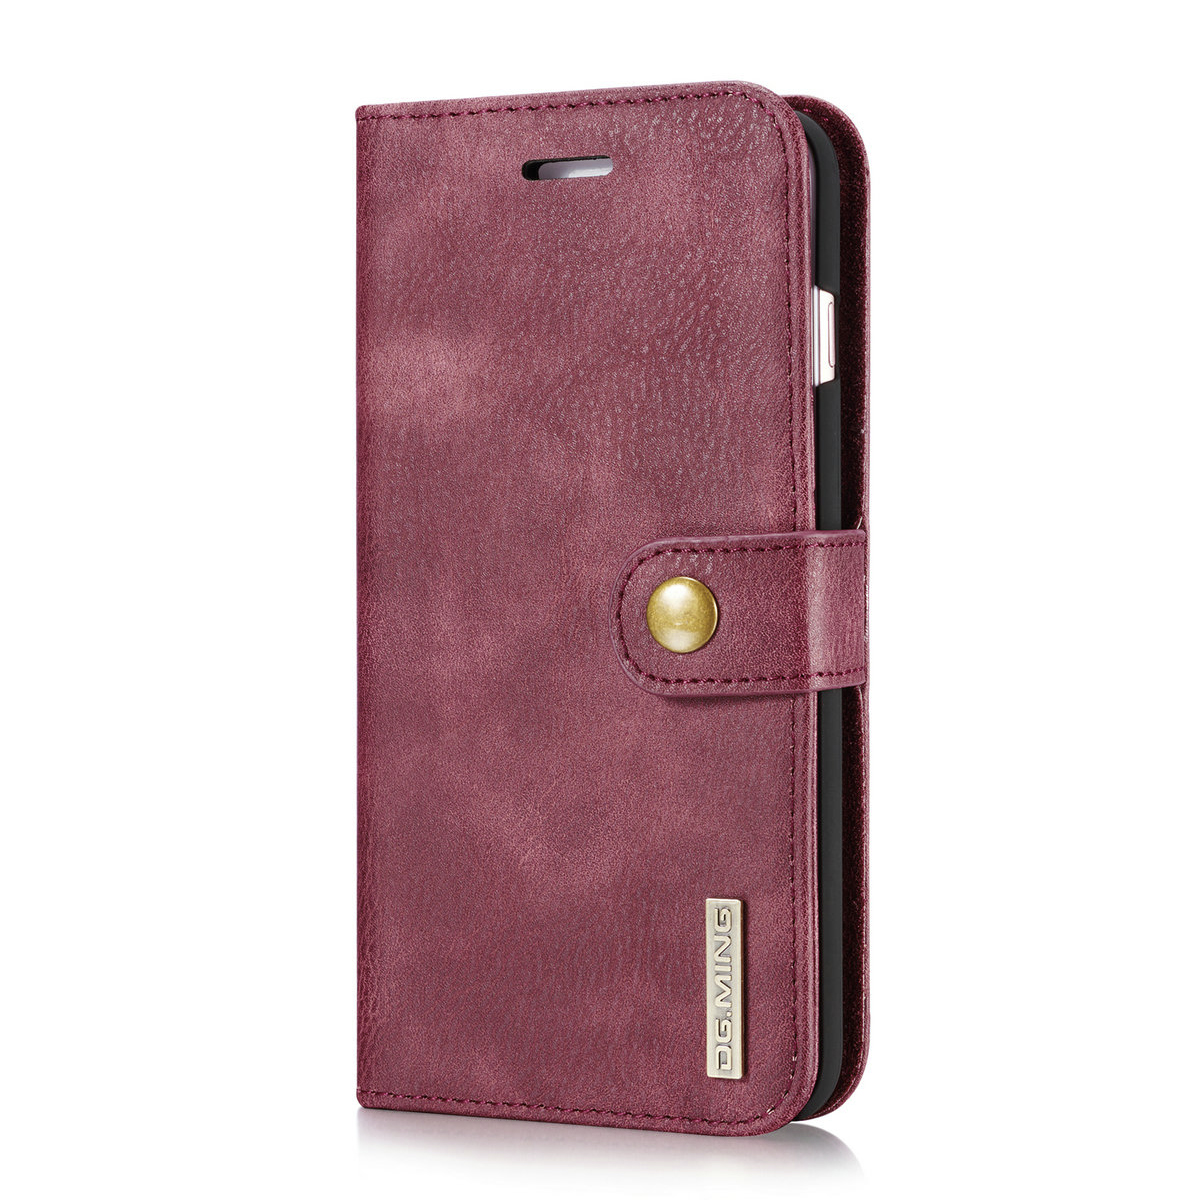 iphone 5s wallet cases luxury magnetic leather cover removable flip wallet 9551